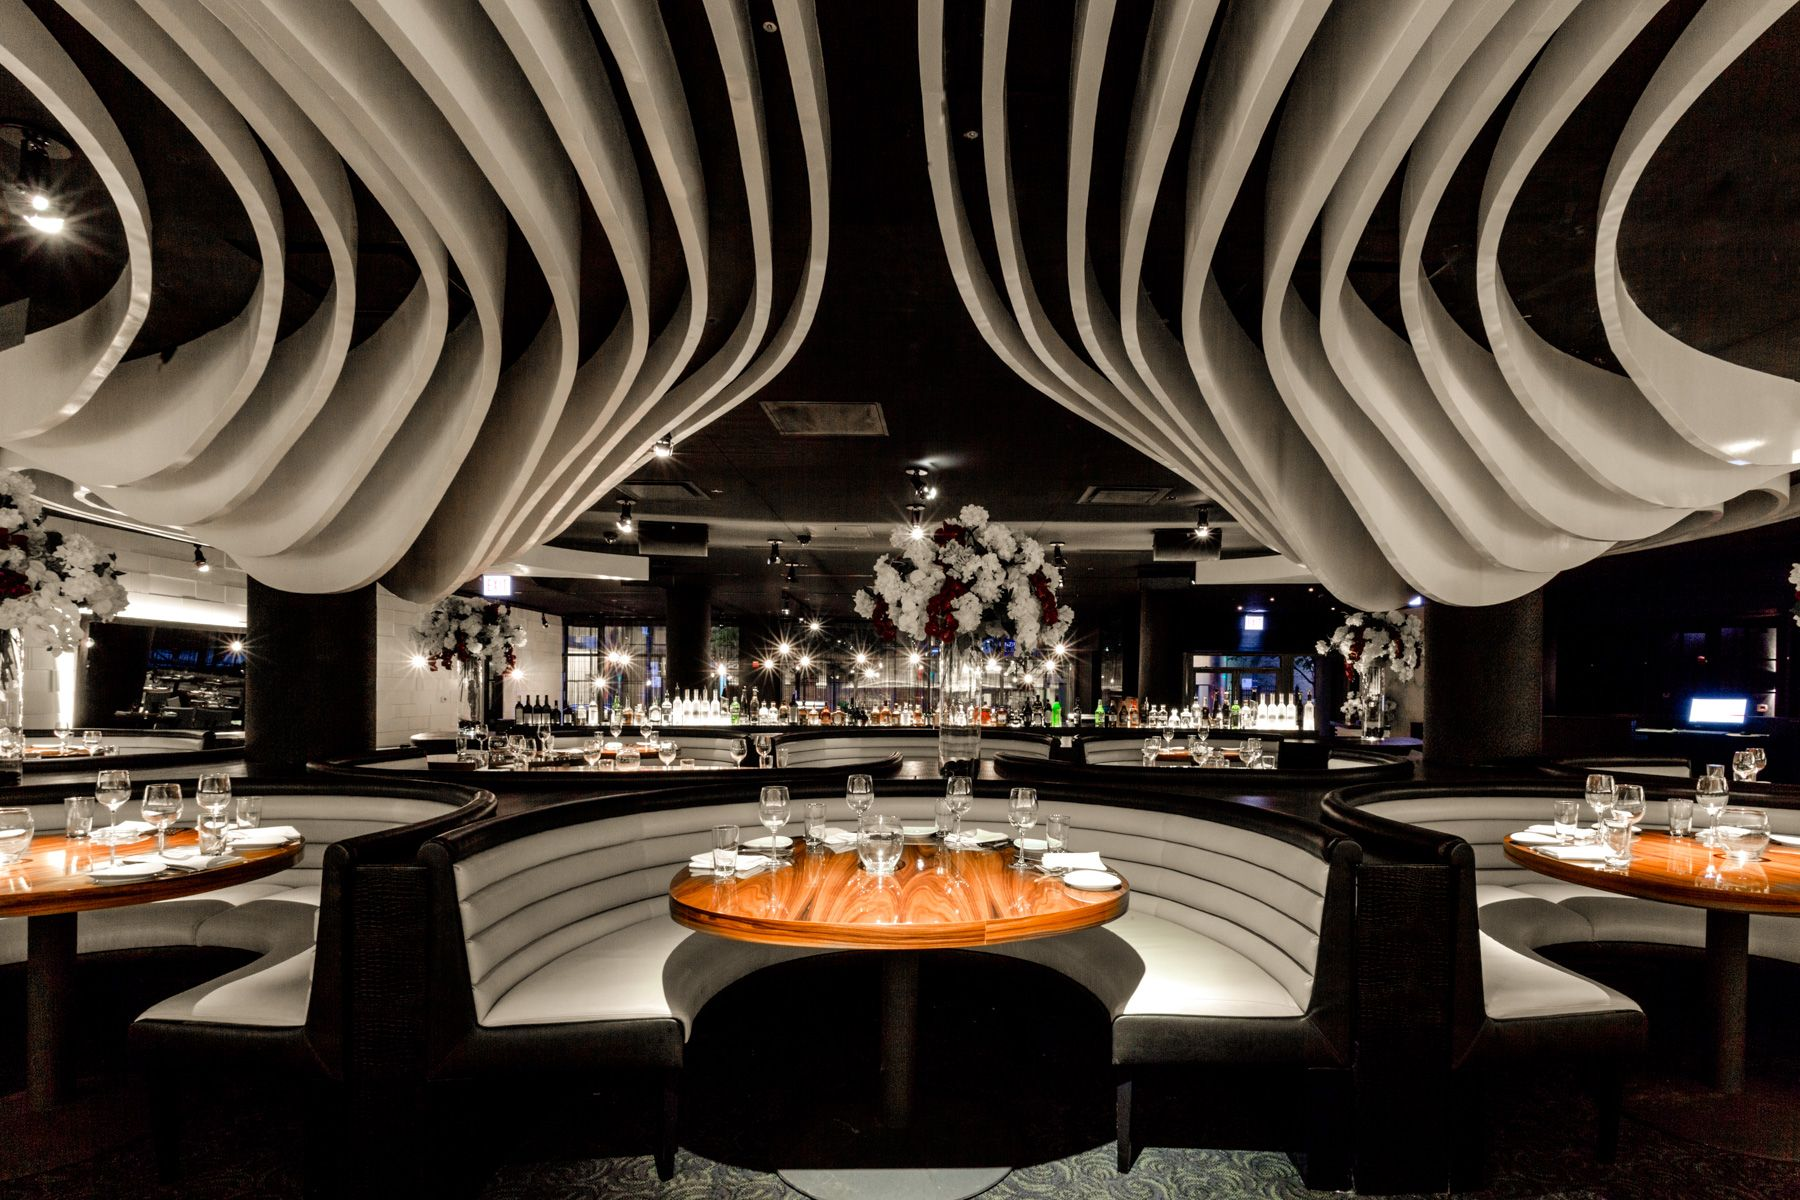 A Taste Of Stk Across The Country  Best Steak Restaurants Prepossessing Stk Private Dining Room Review